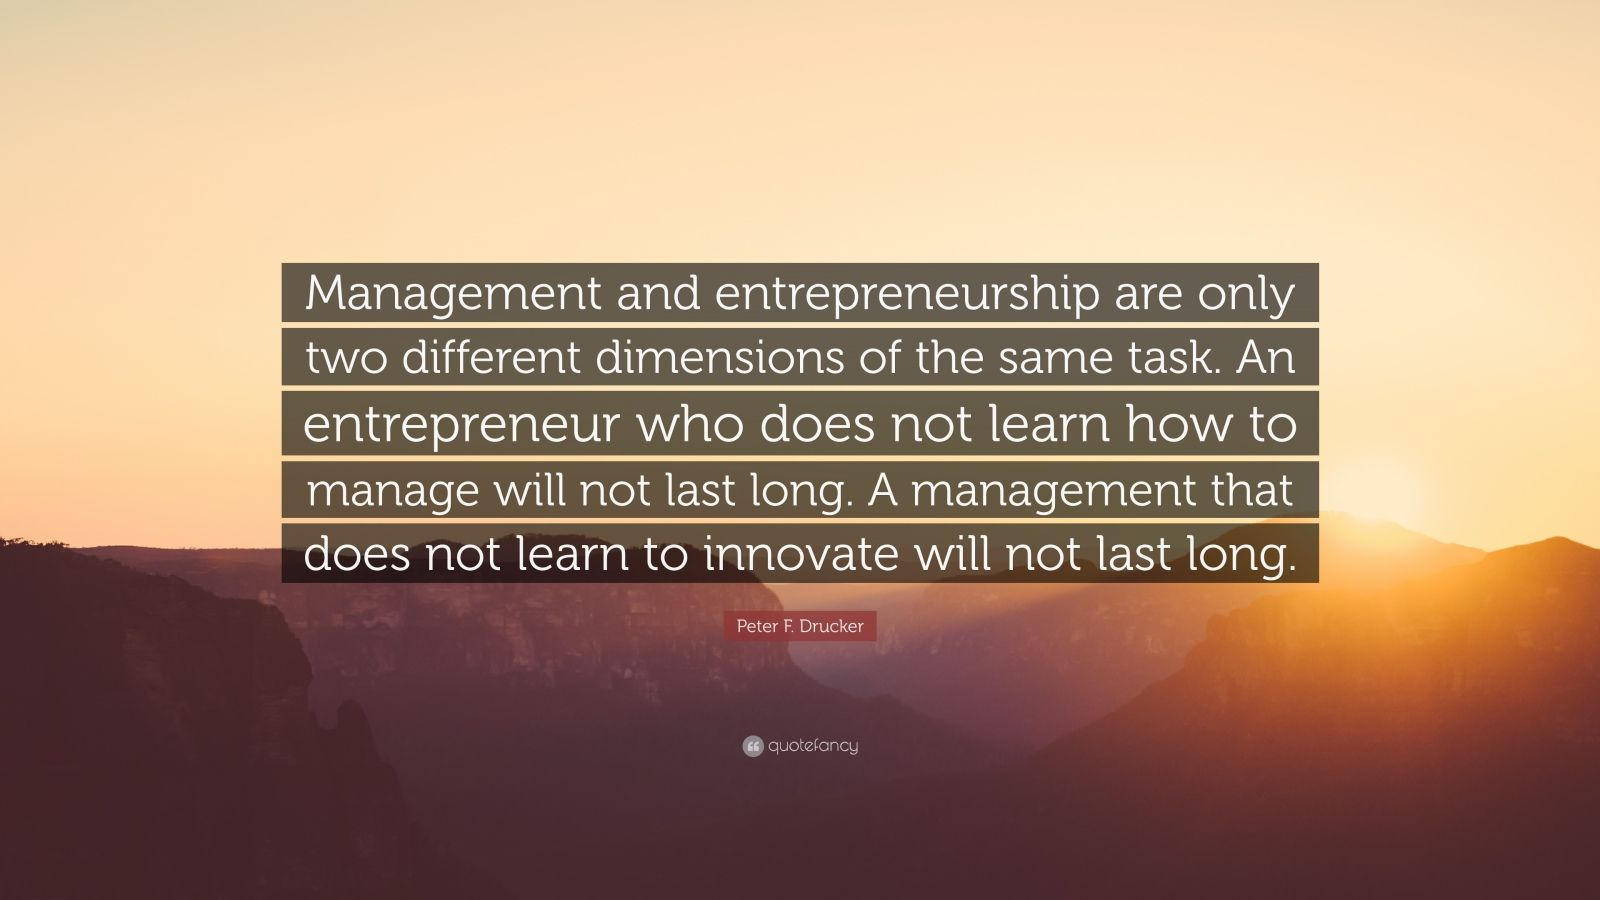 """Peter F. Drucker Quote: """"Management and entrepreneurship are only two different dimensions of the same task. An entrepreneur who does not learn how to manage will not last long. A management that does not learn to innovate will not last long."""""""